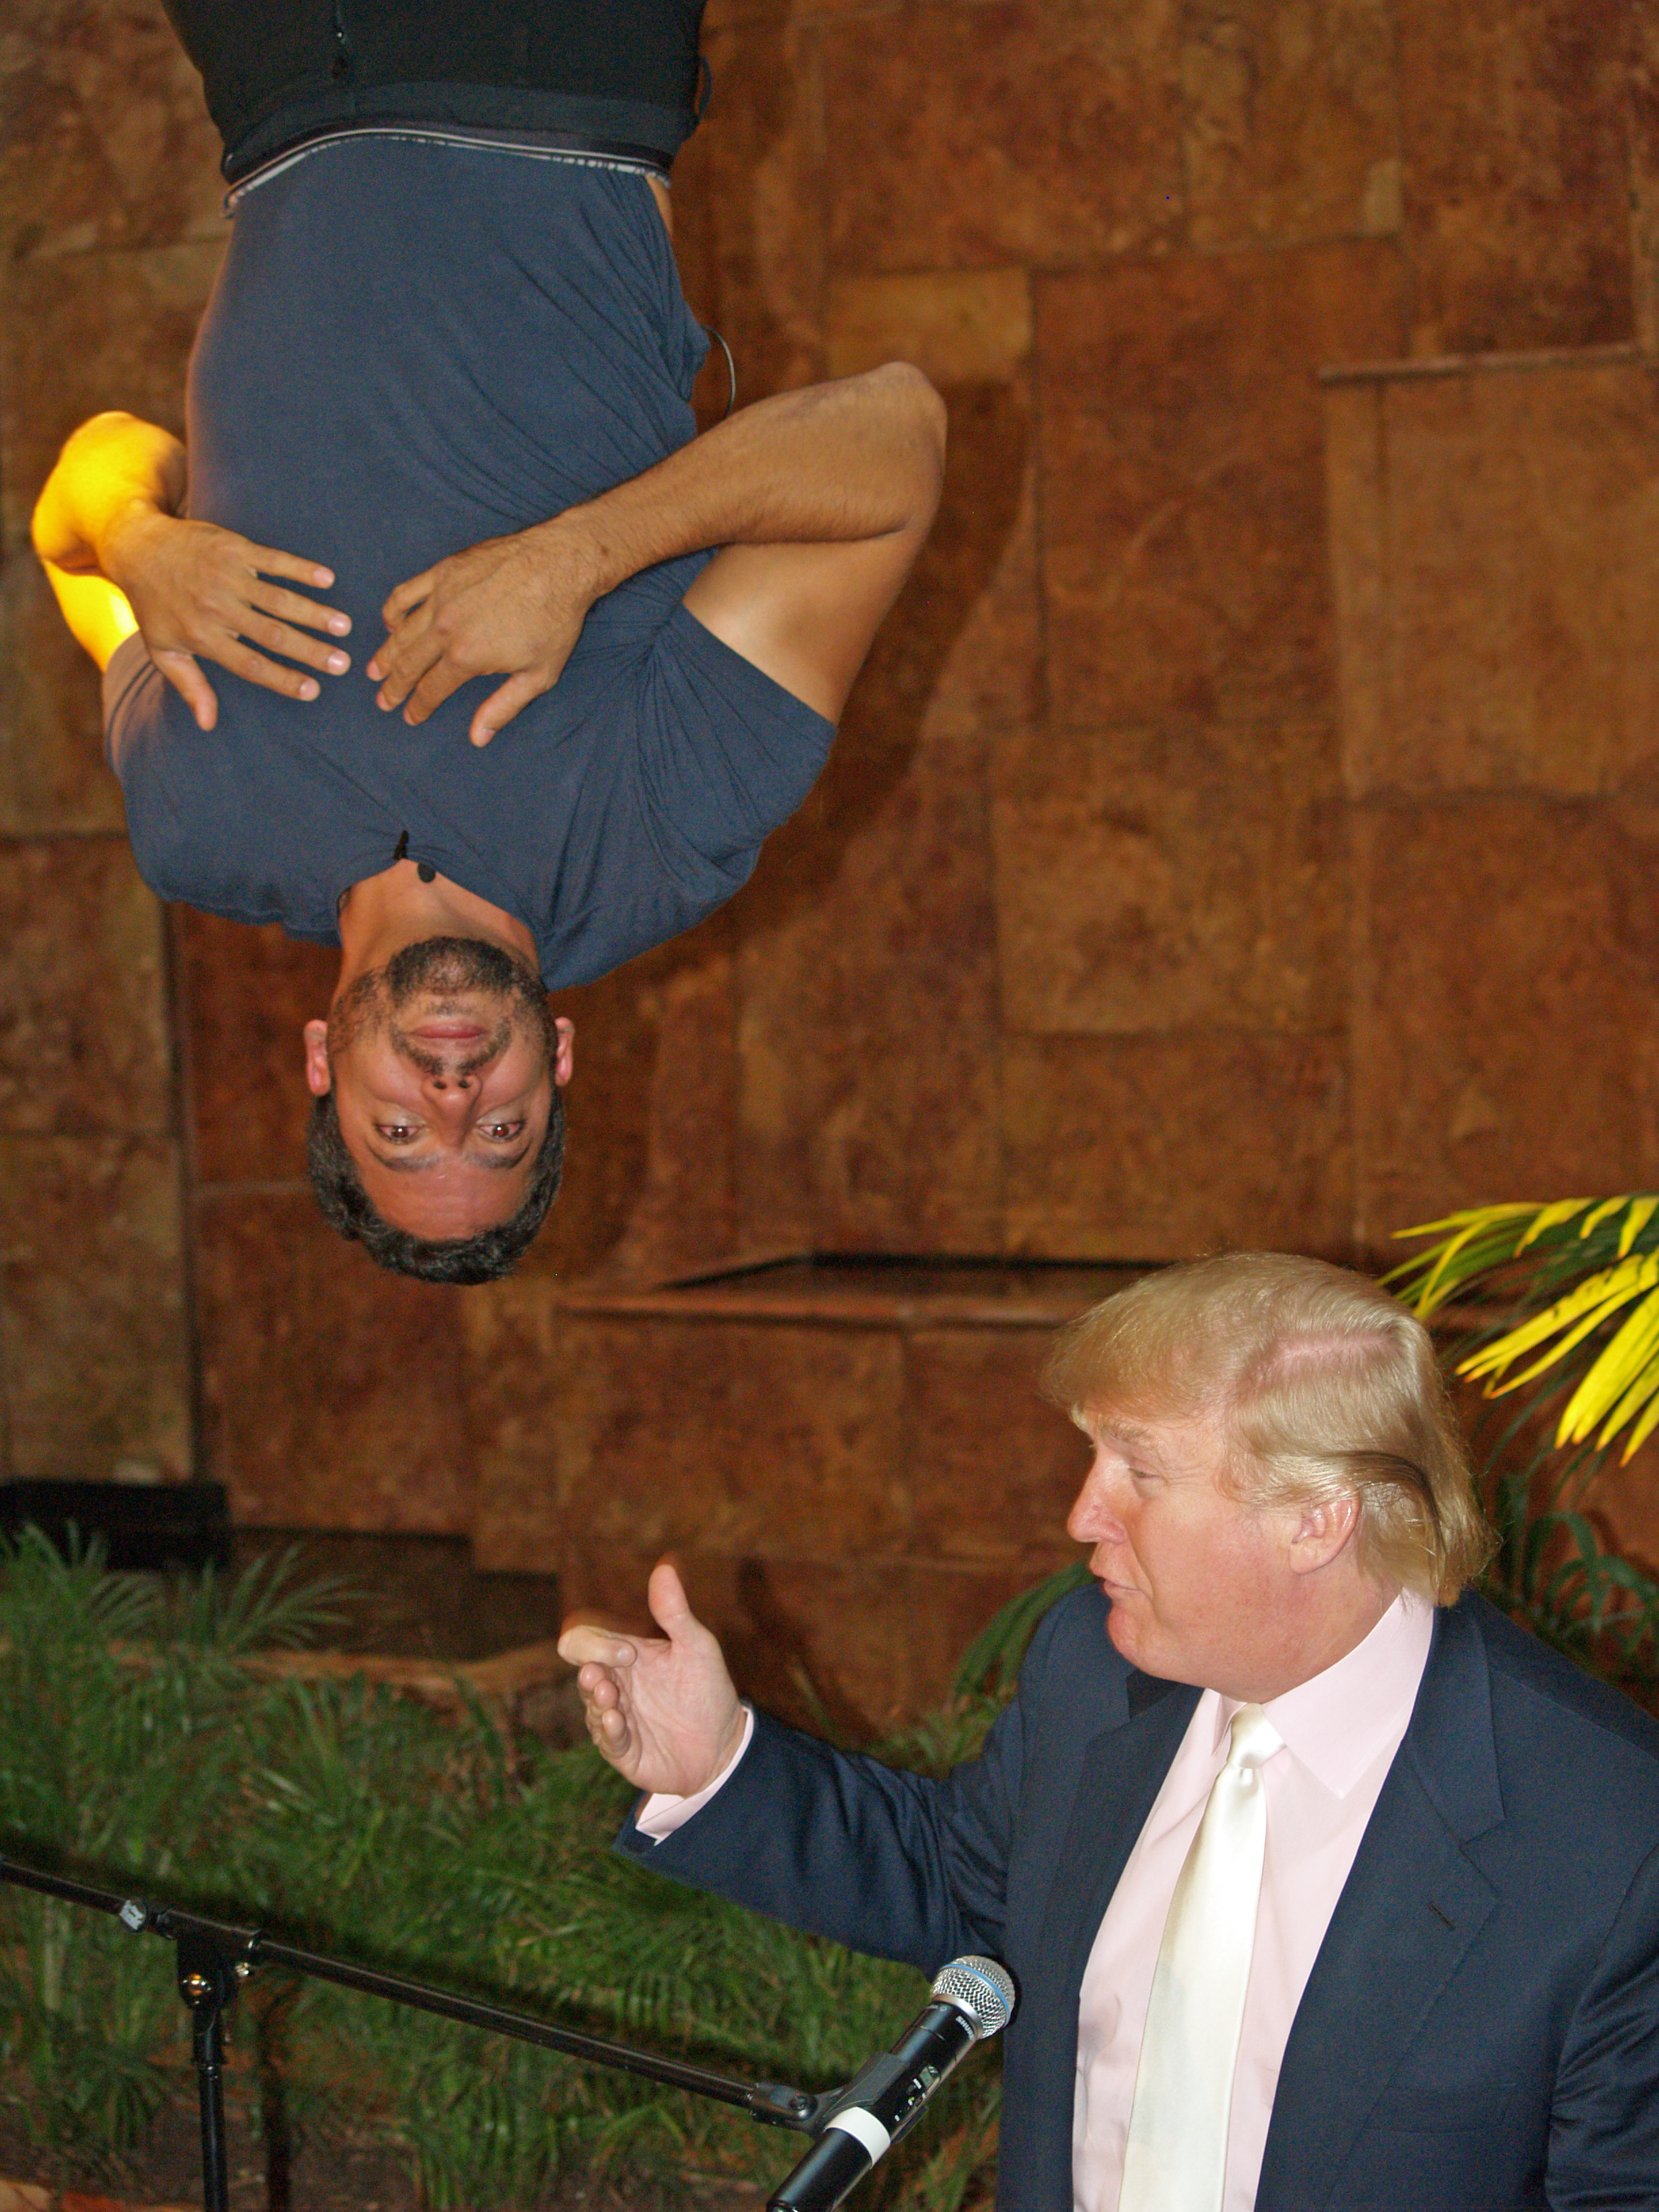 Description Donald Trump announcing latest David Blaine feat 5.jpg